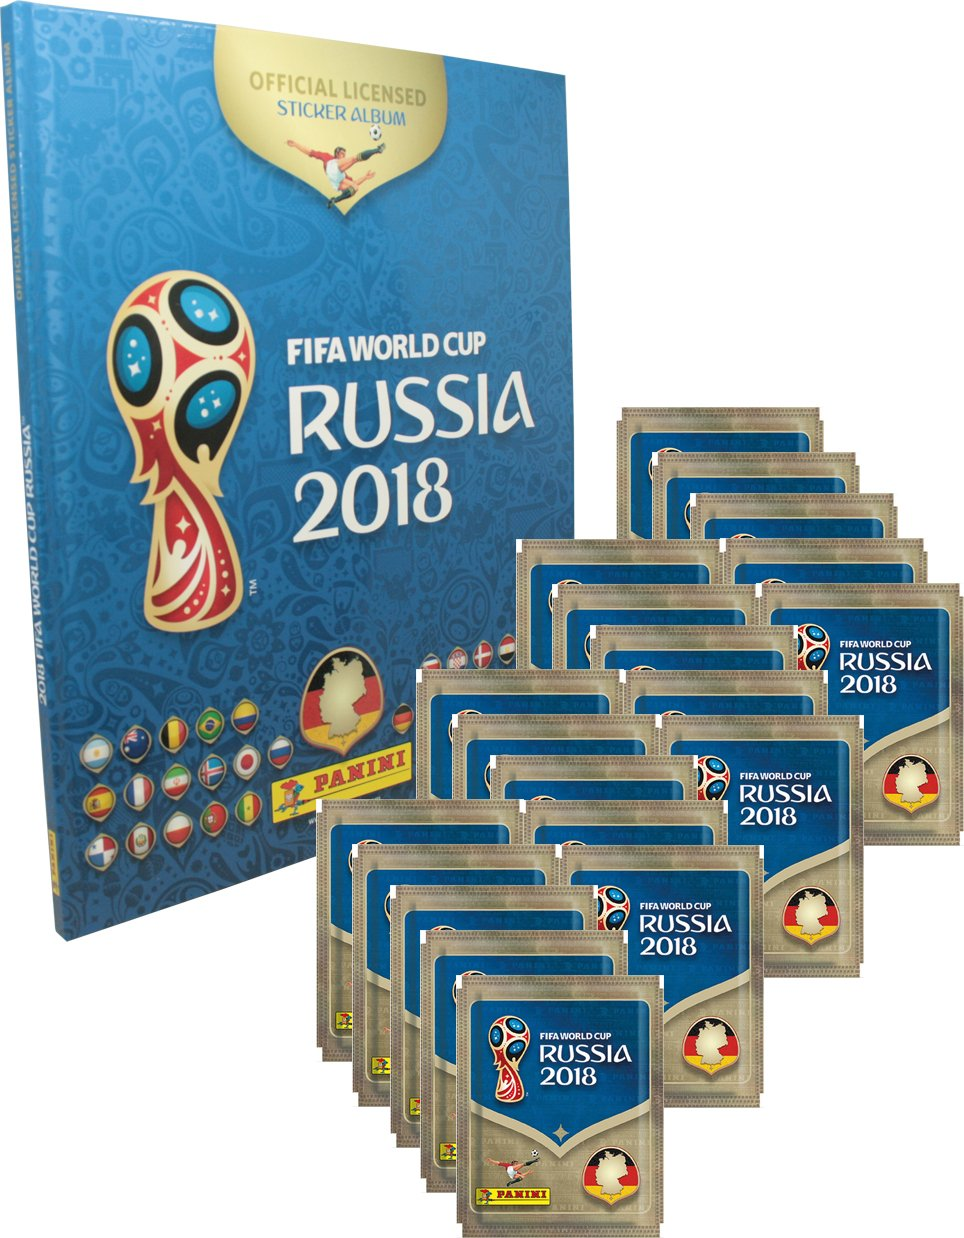 10 FIFA World Cup Russia 2018 Panini Sticker Albums Empty USA Edition Set Of 5